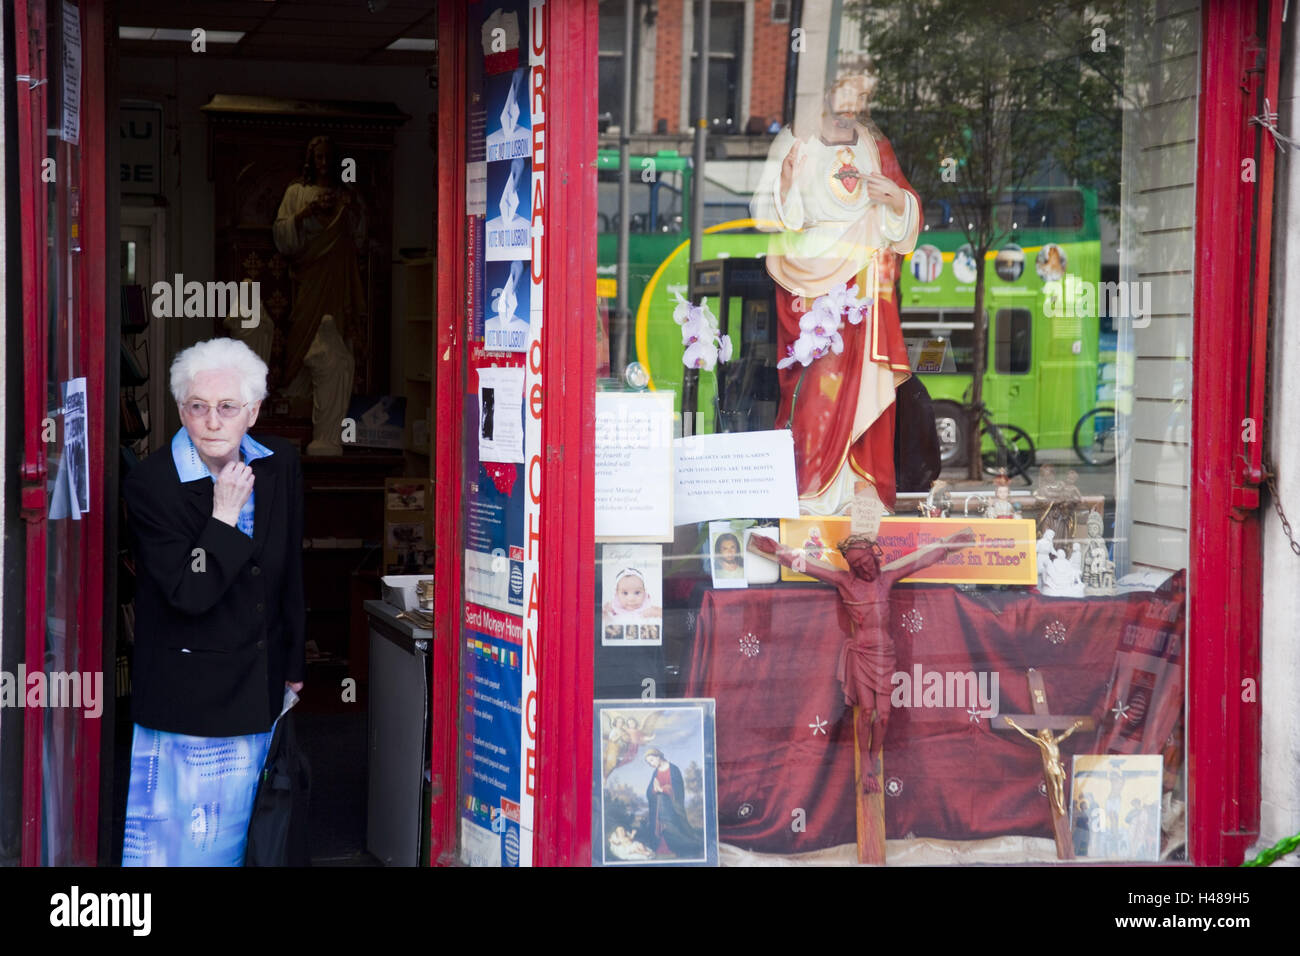 Ireland, Dublin, city centre, O'Connell Street, shop, devotional objects, woman, - Stock Image